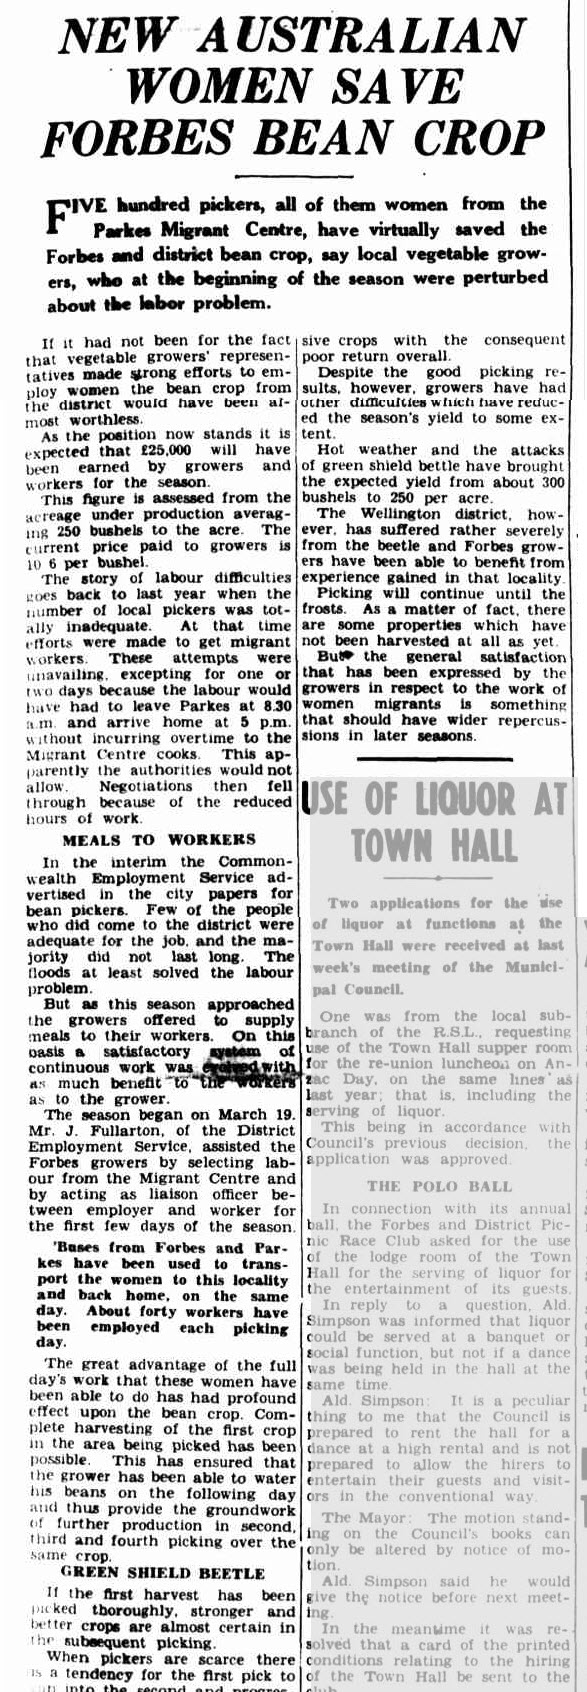 The migrant centre at Parkes saved the town of Forbes not once, but twice! This report details how the women of the Parkes Migrant Centre saved the bean crop of Forbes. Source: NEW AUSTRALIAN WOMEN SAVE FORBES BEAN CROP (1951, April 17). The Forbes Advocate (NSW : 1911 - 1954), p. 1. Retrieved November 28, 2016, from http://nla.gov.au/nla.news-article219101306